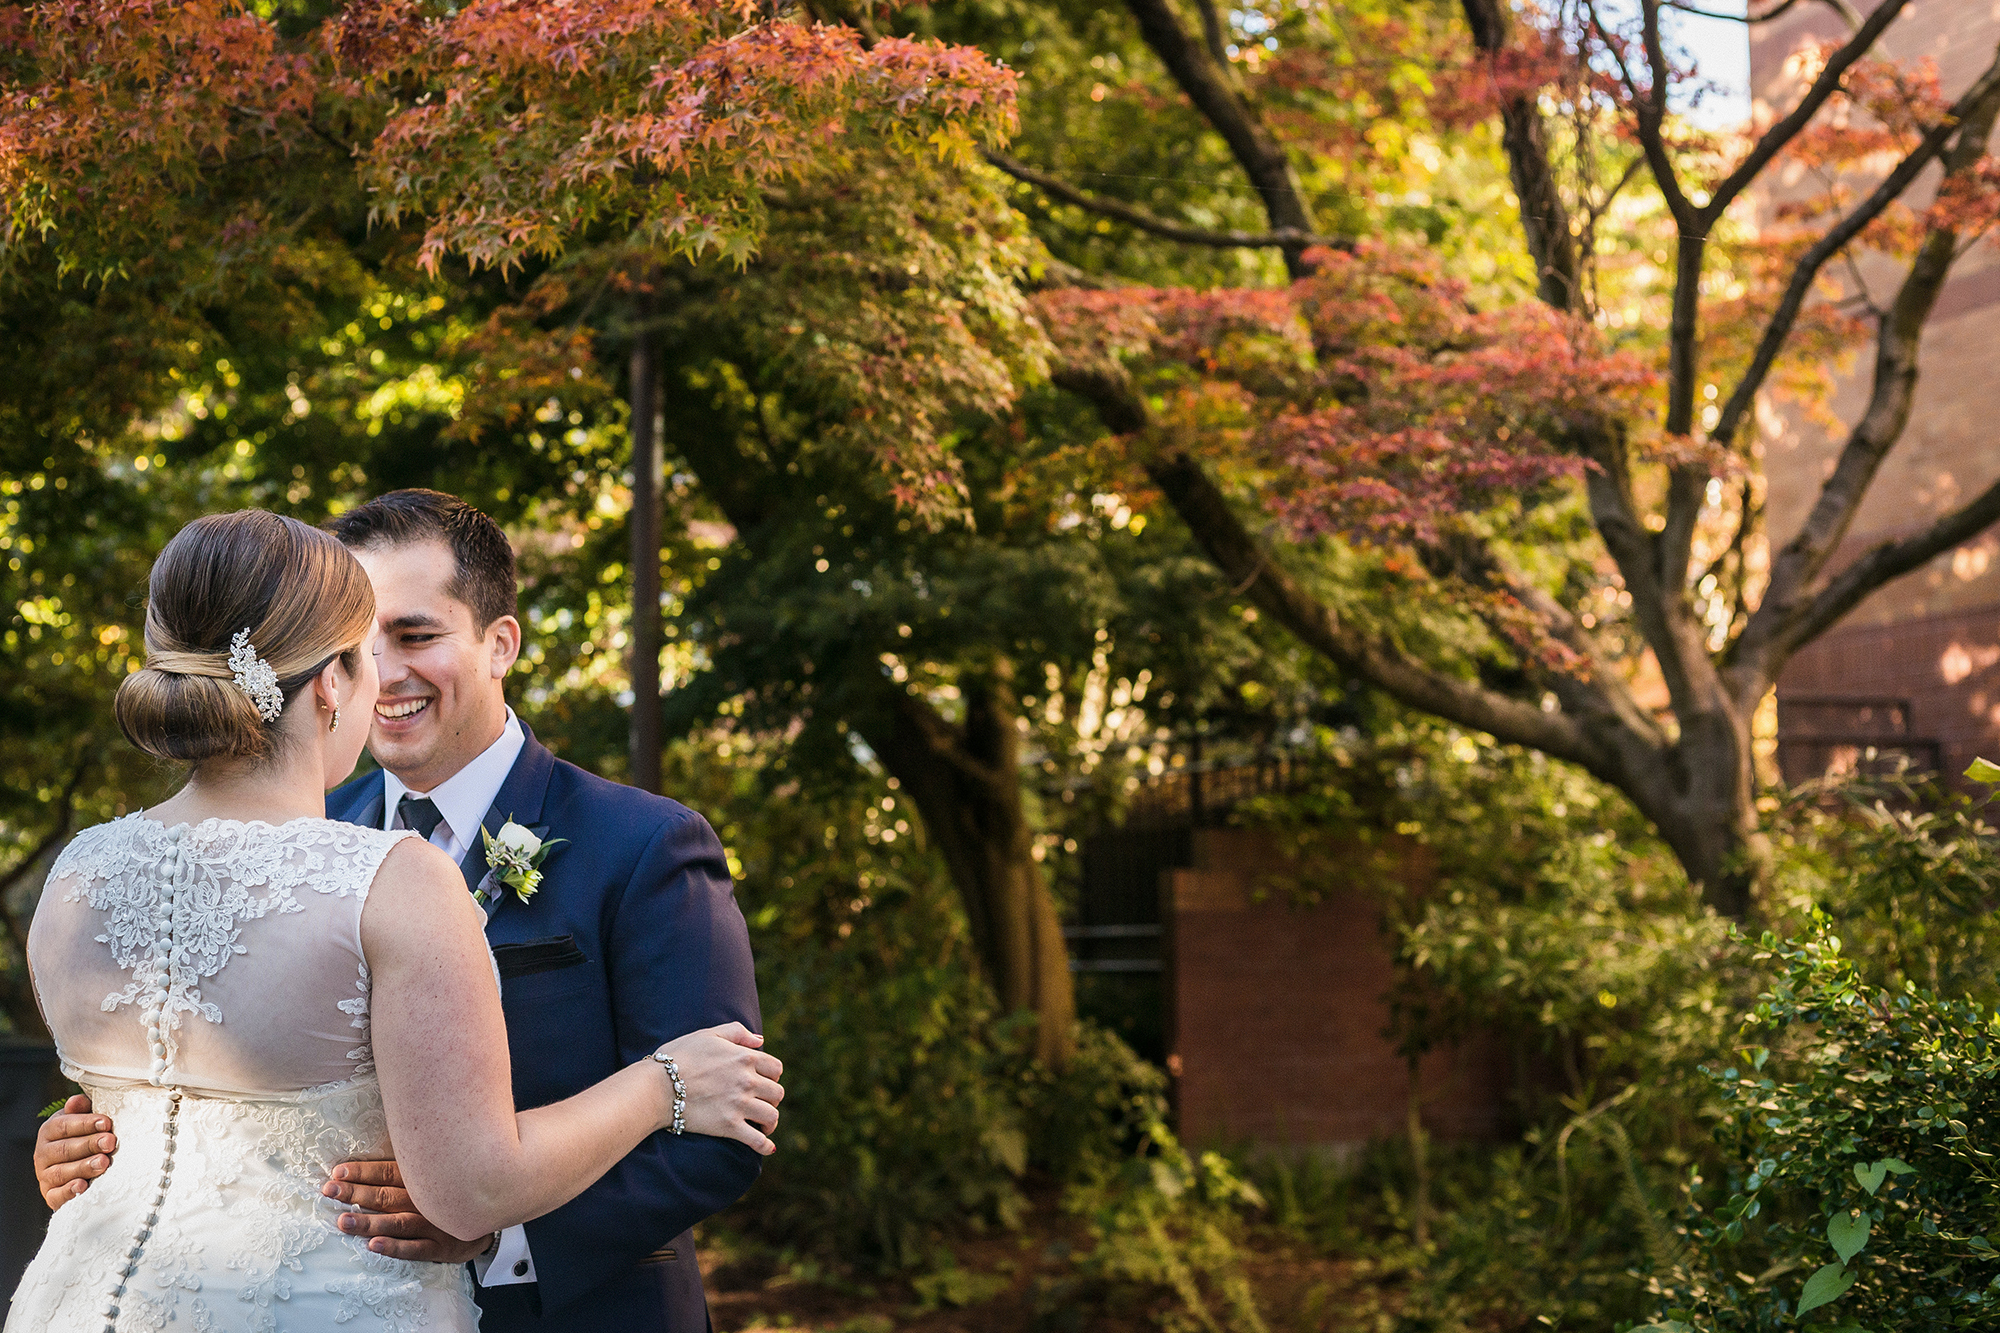 BRIX & MORTAR WEDDING IN AUTUMN